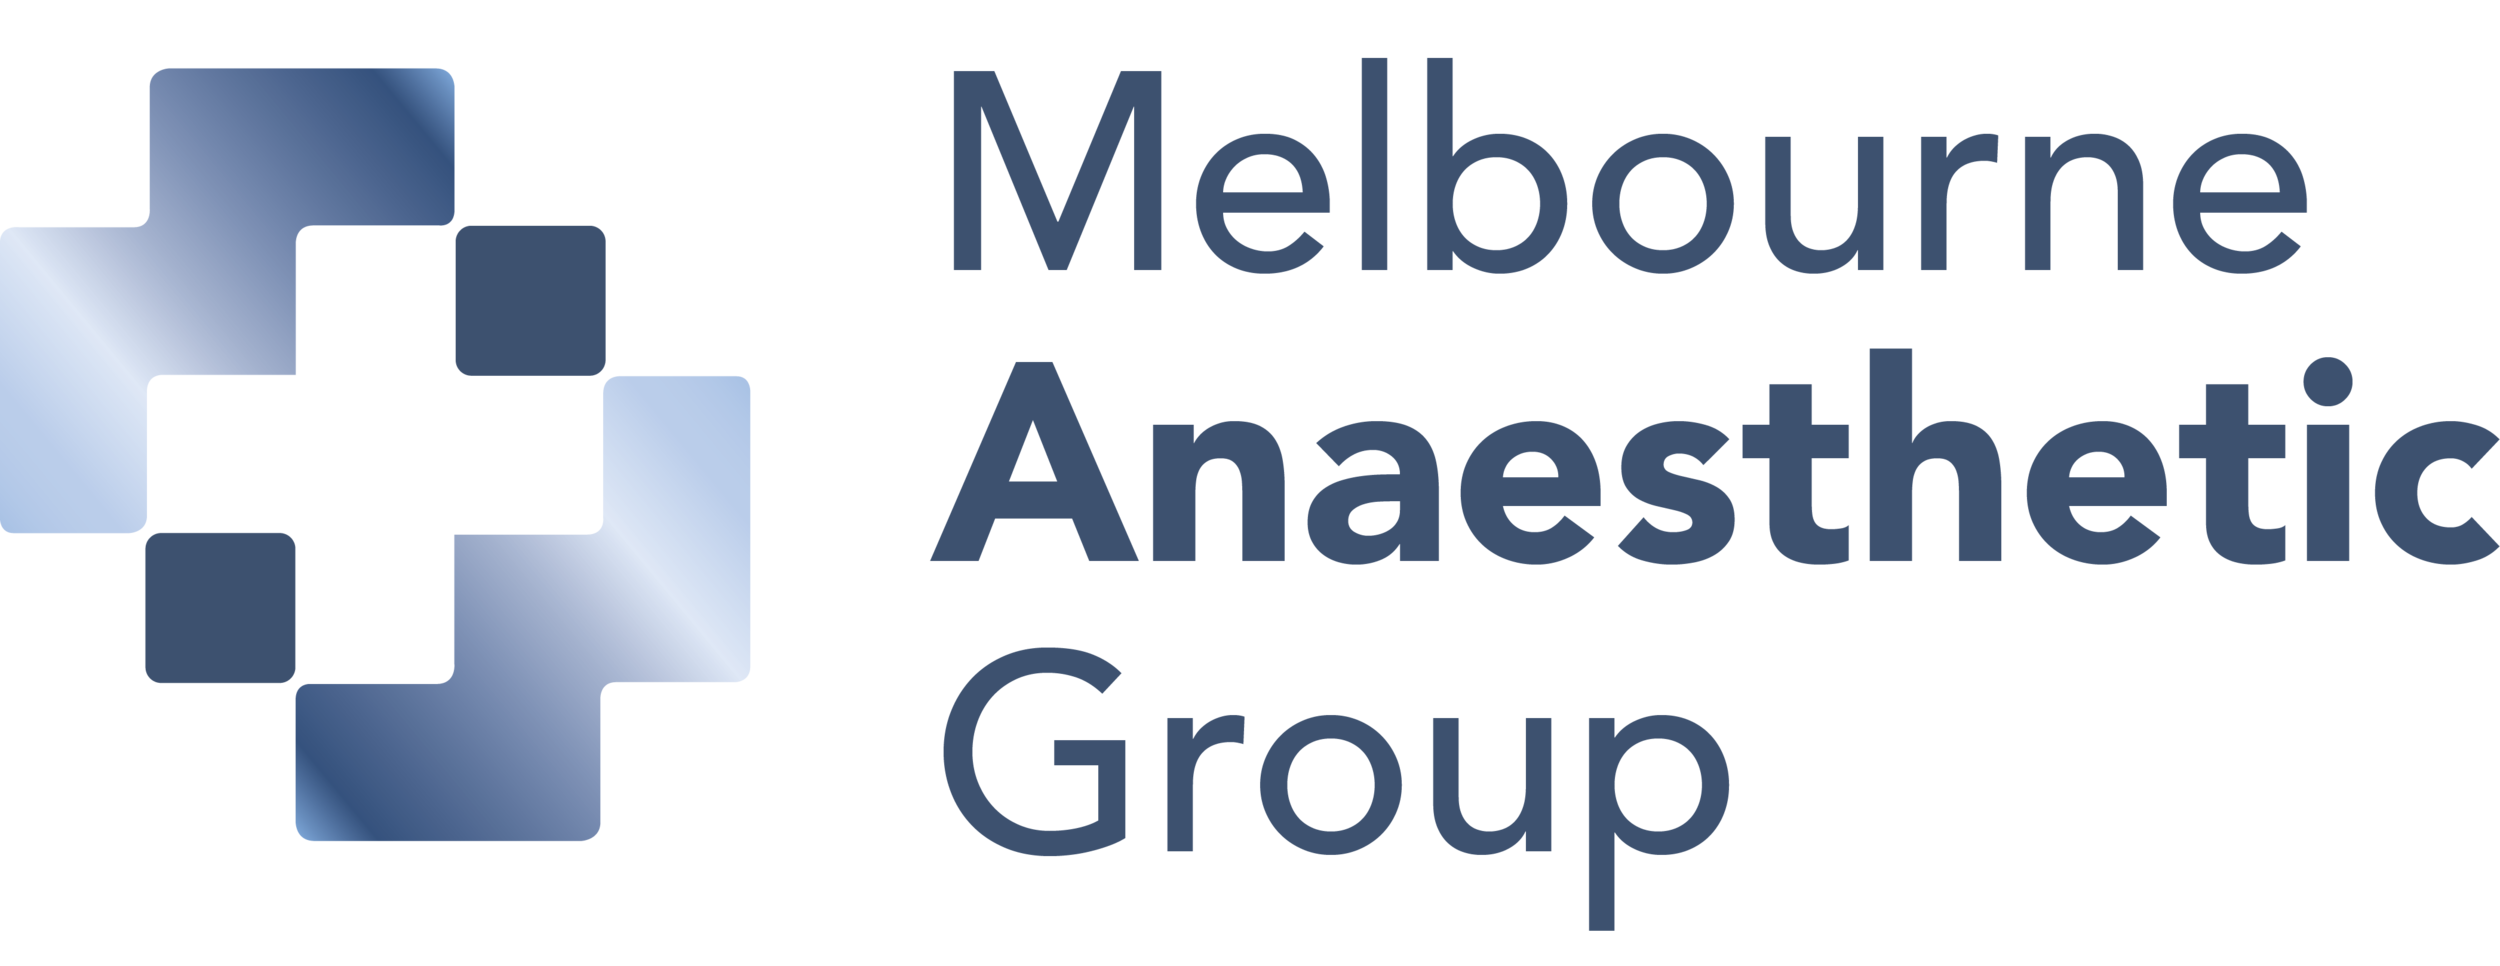 Melb-Anaesthetic-Logo-011.png